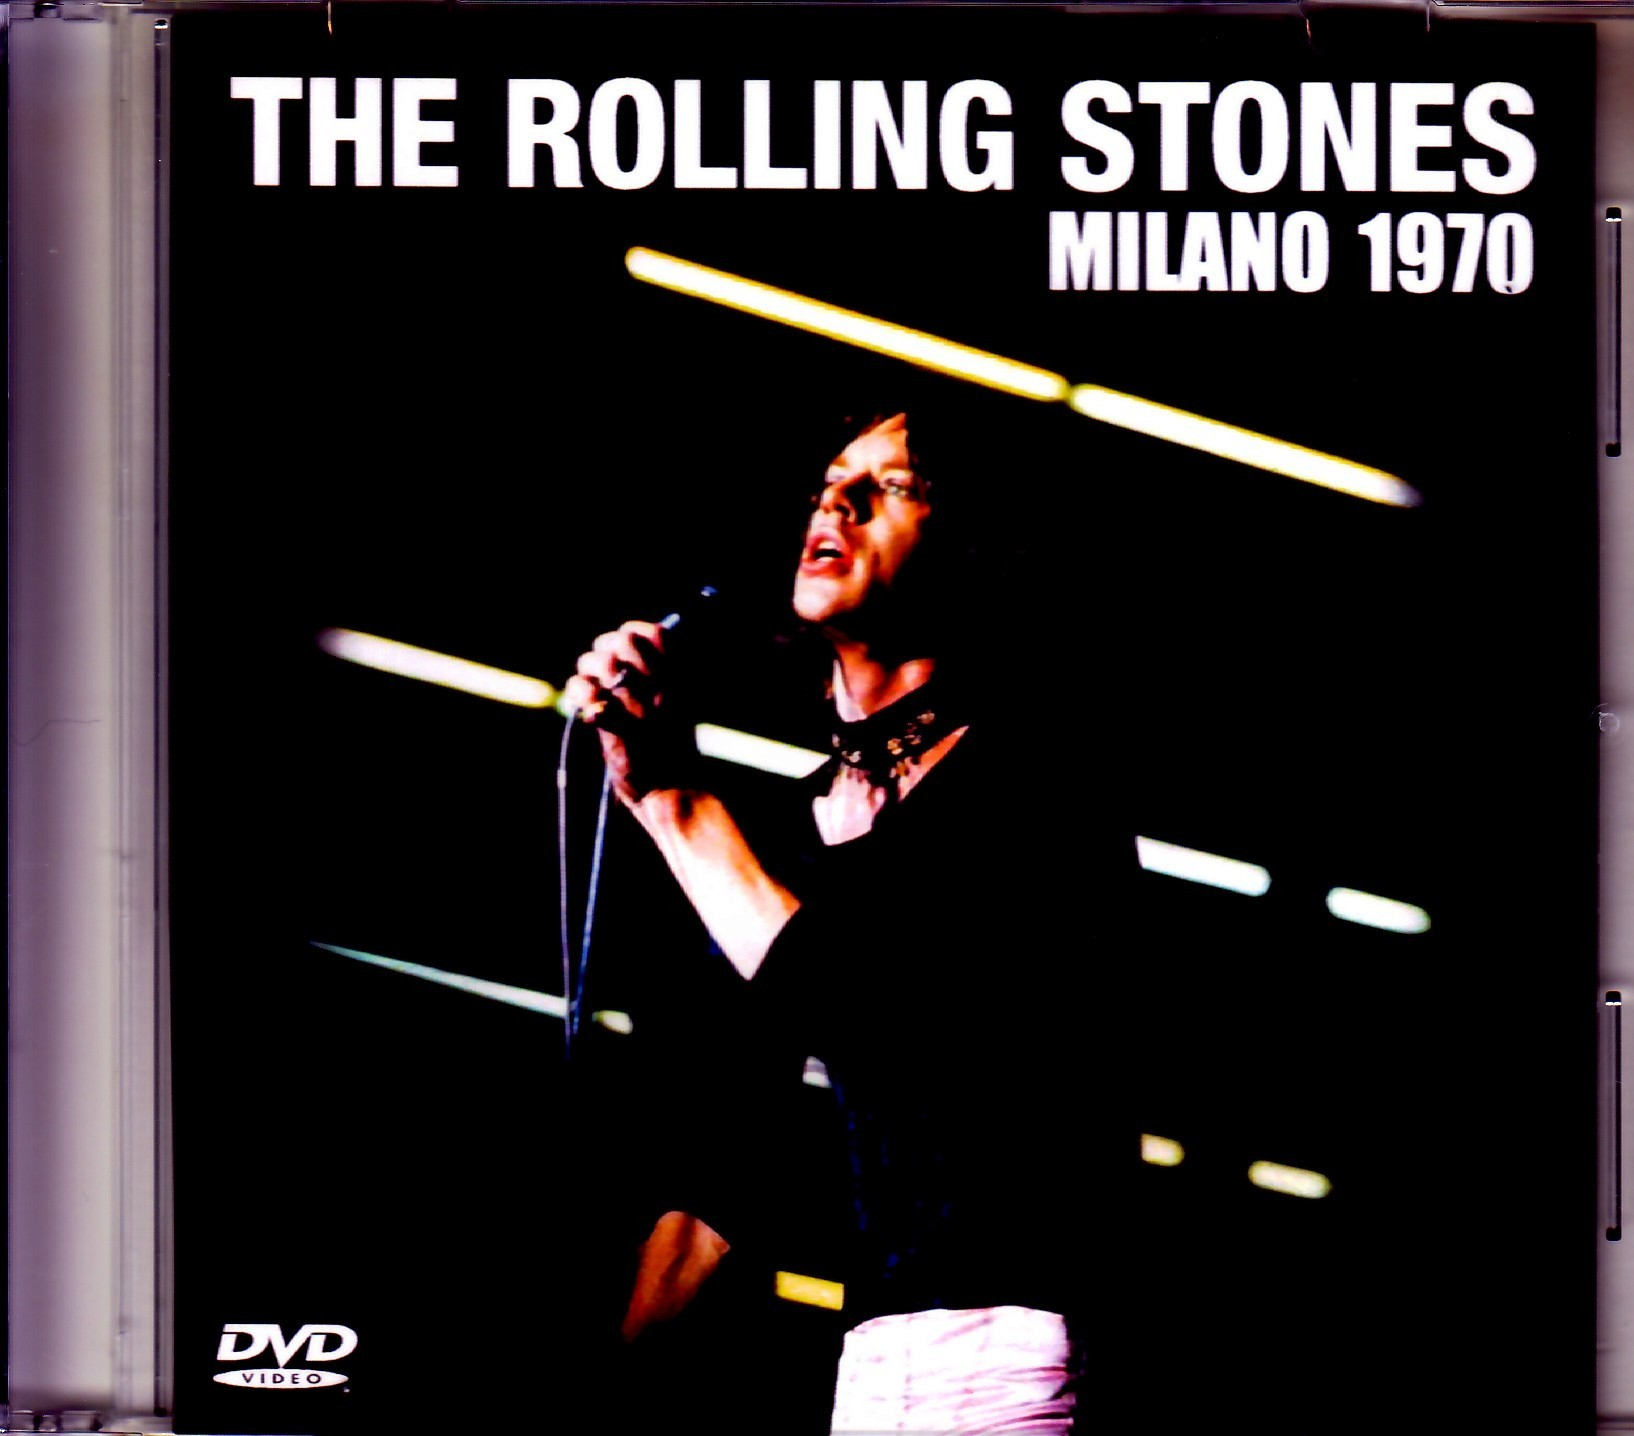 Rolling Stones ローリング・ストーンズ/Italy 1970 Complete